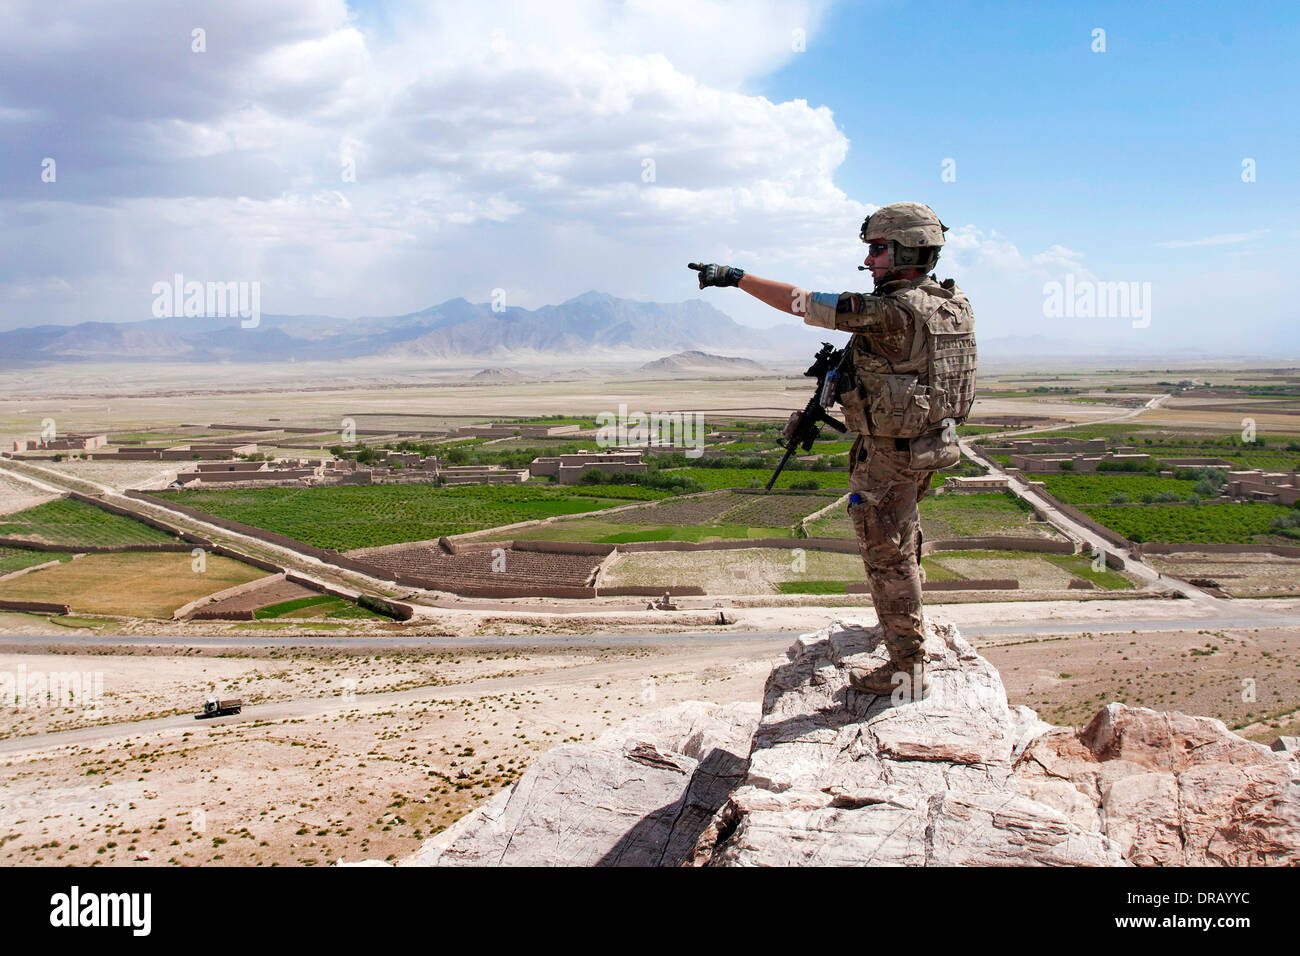 U.S. Army soldier in Afghanistan - Stock Image